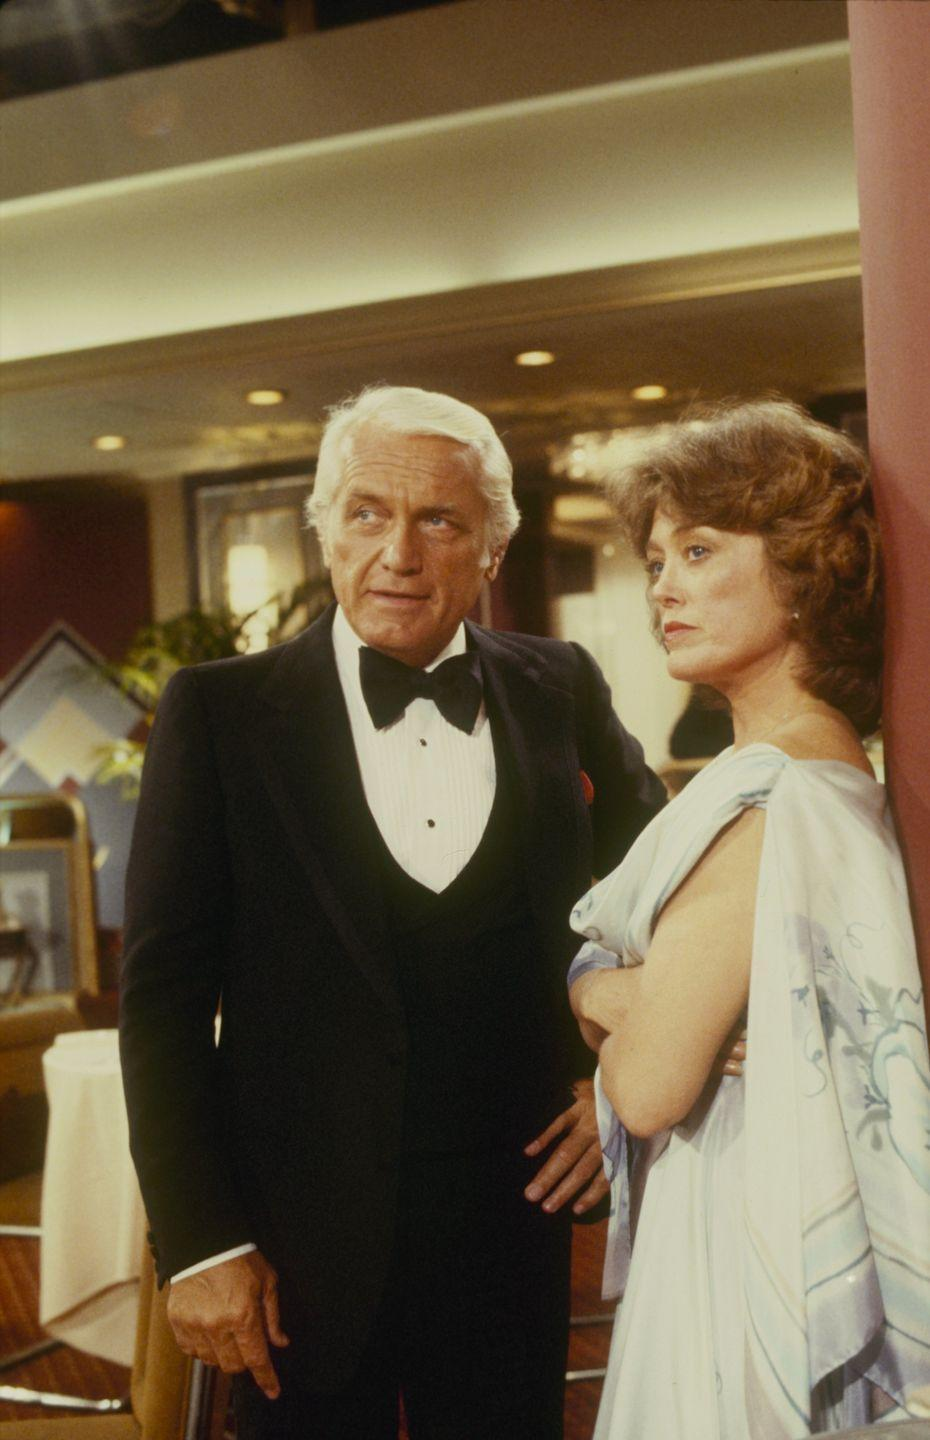 <p>Another spin on <em>The Love Boat</em>, as a completely different character, partnering up with former <em>Mary Tyler Moore</em> star Ted Knight. </p>